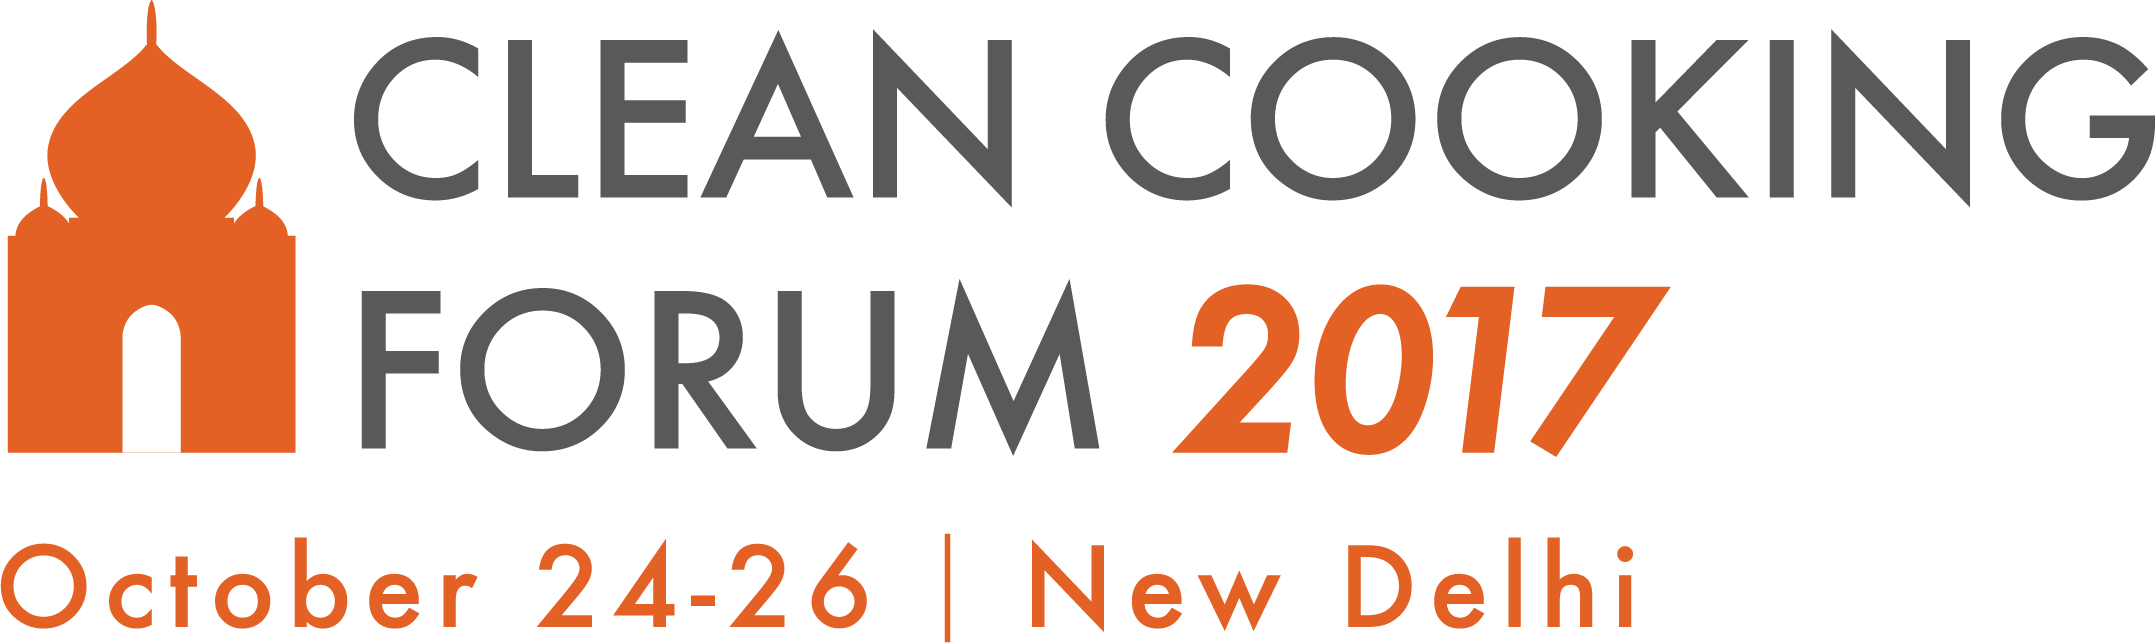 Clean Cooking Forum 2017 // October 24 - 26 // New Delhi, India